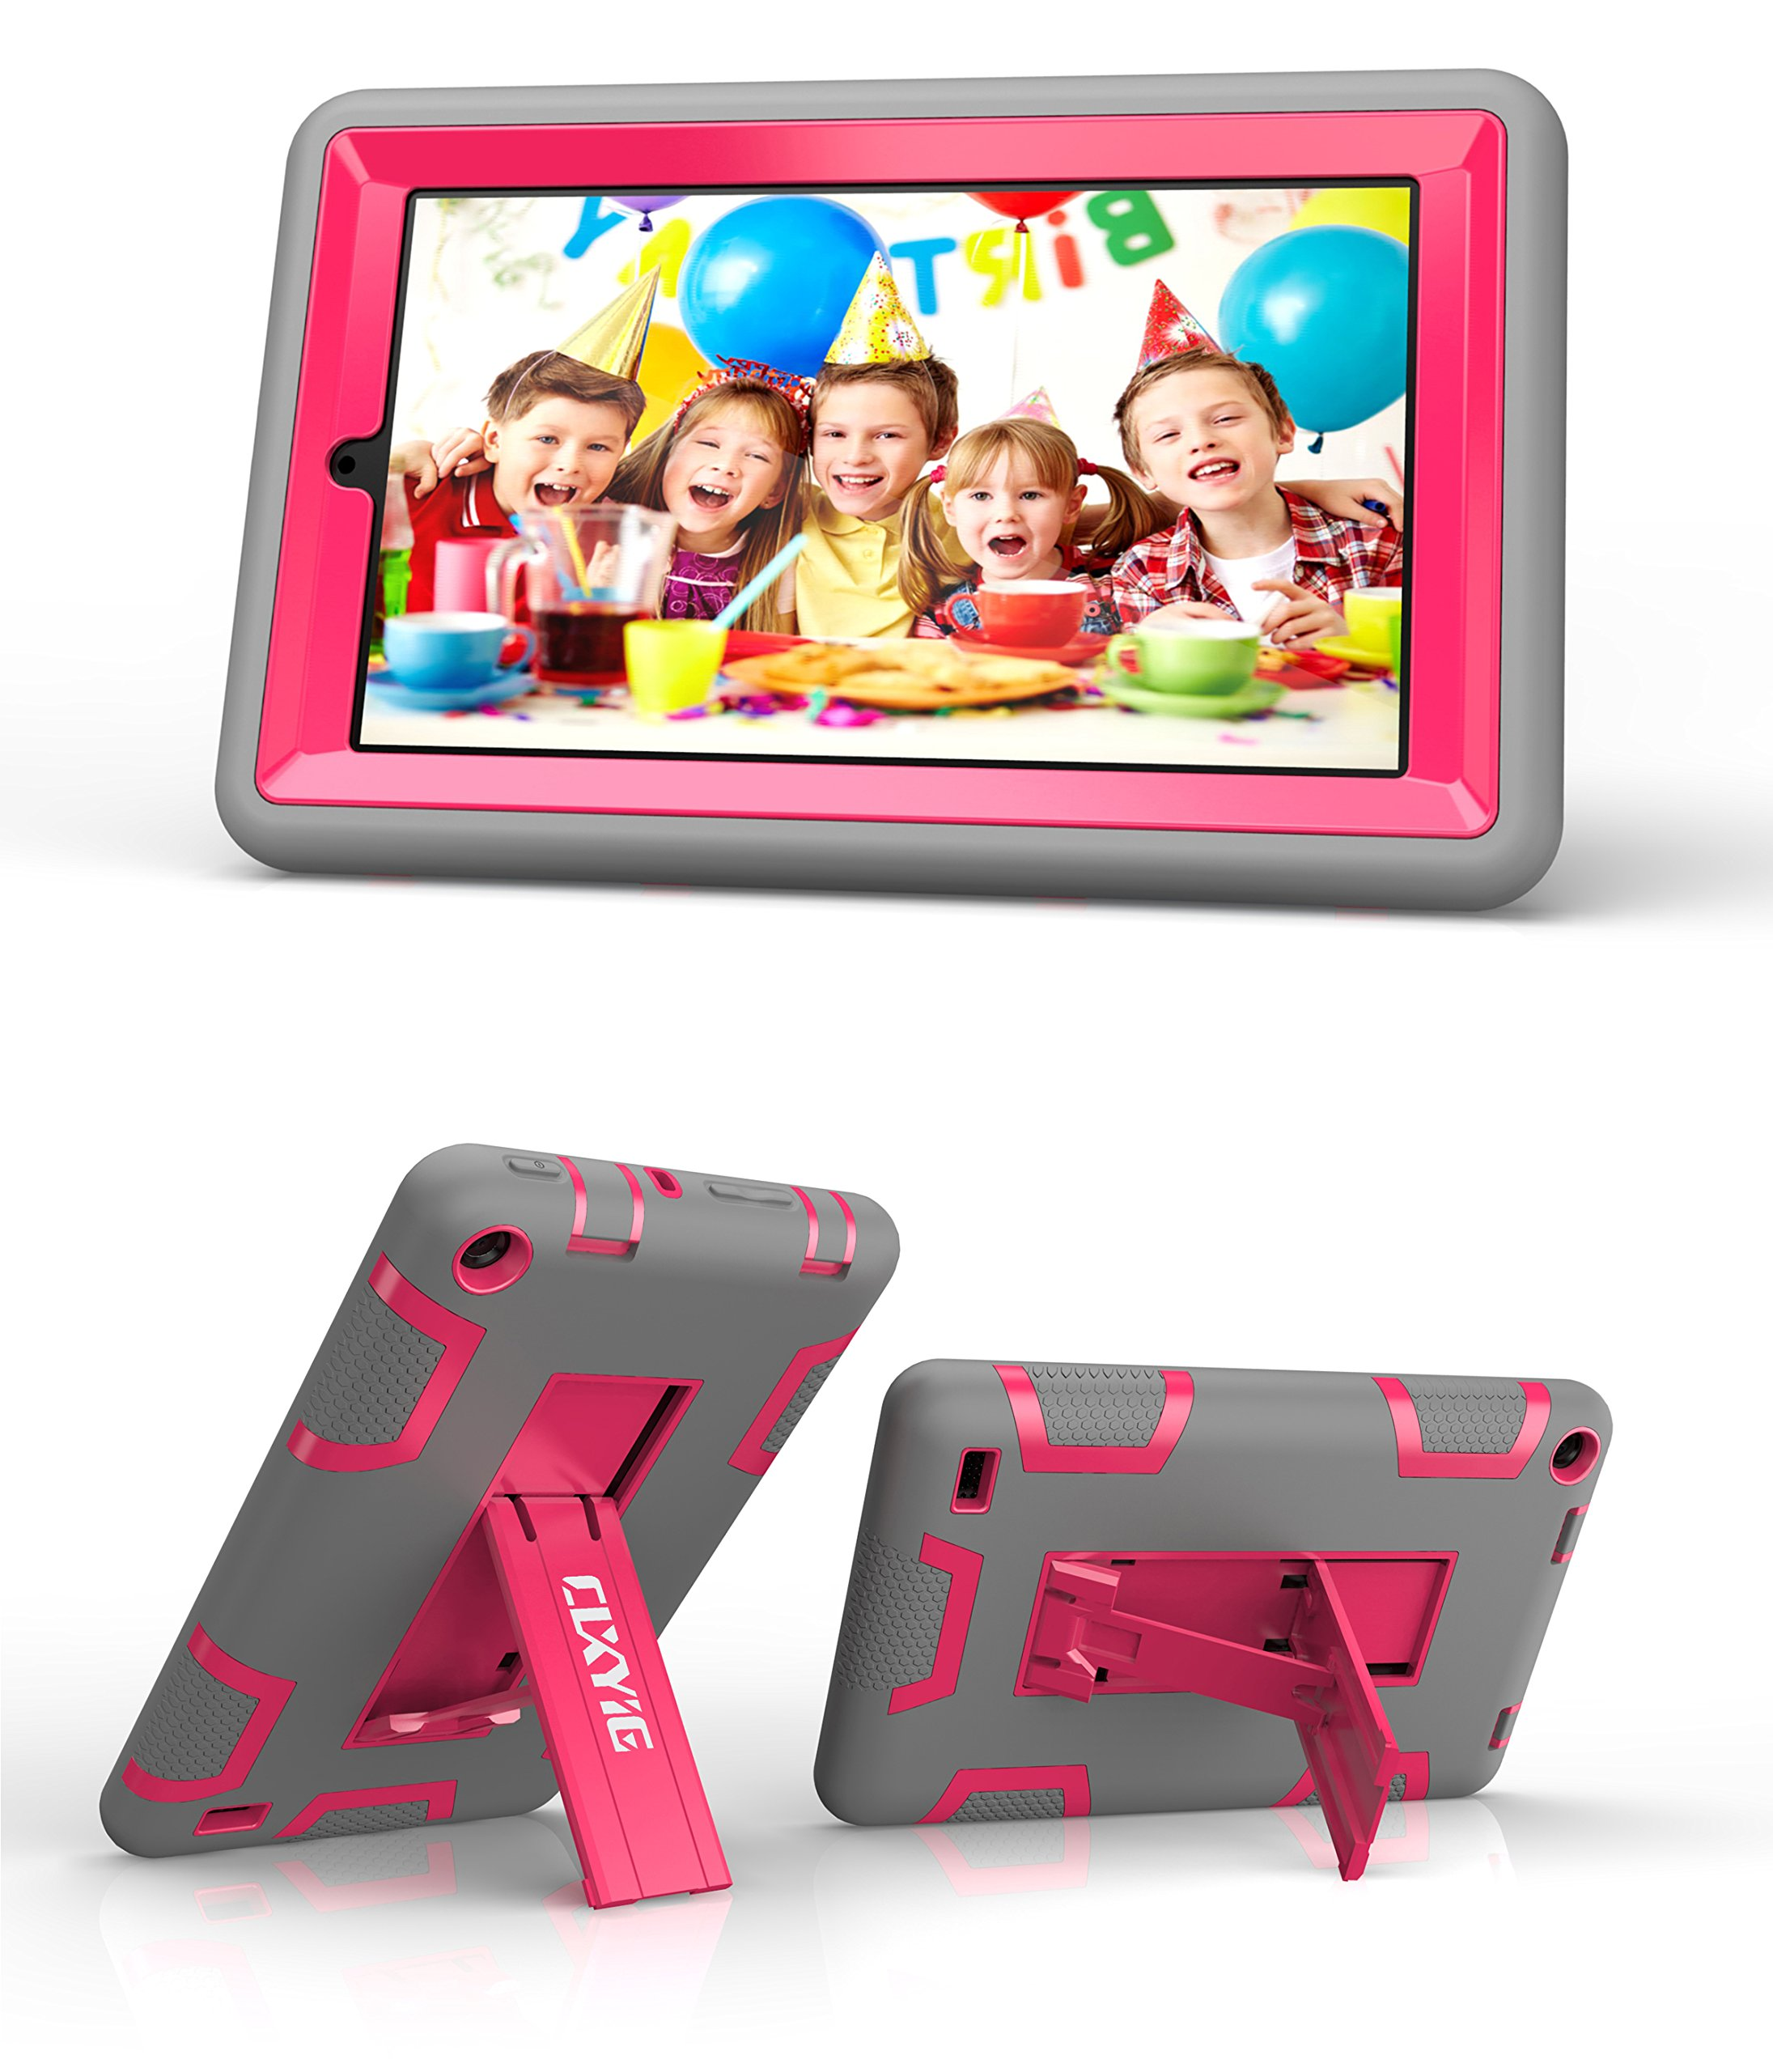 CLXYIG Kindle Fire 7''Case,[Kickstand ][Shockproof]Hybrid High Impact Resistant PC + Soft Silicone Armor Defender Protective Case for Amazon Kindle Fire 7 inch 2015 release (Grey,RoseRed)